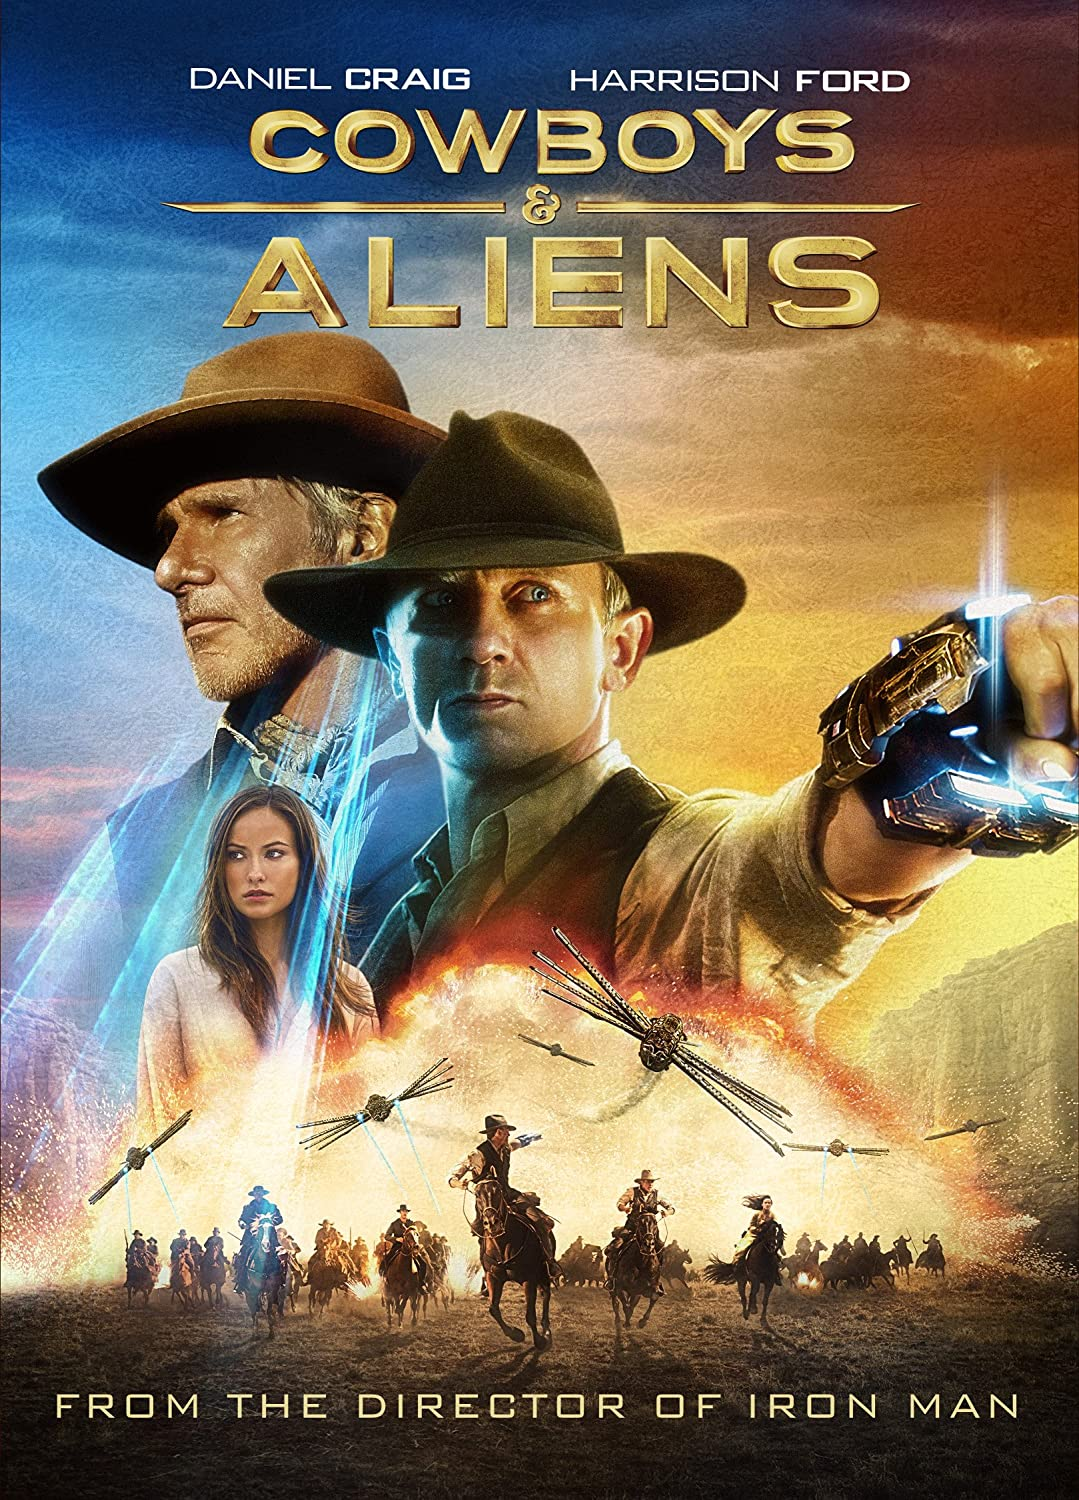 cowboys and aliens full movie free